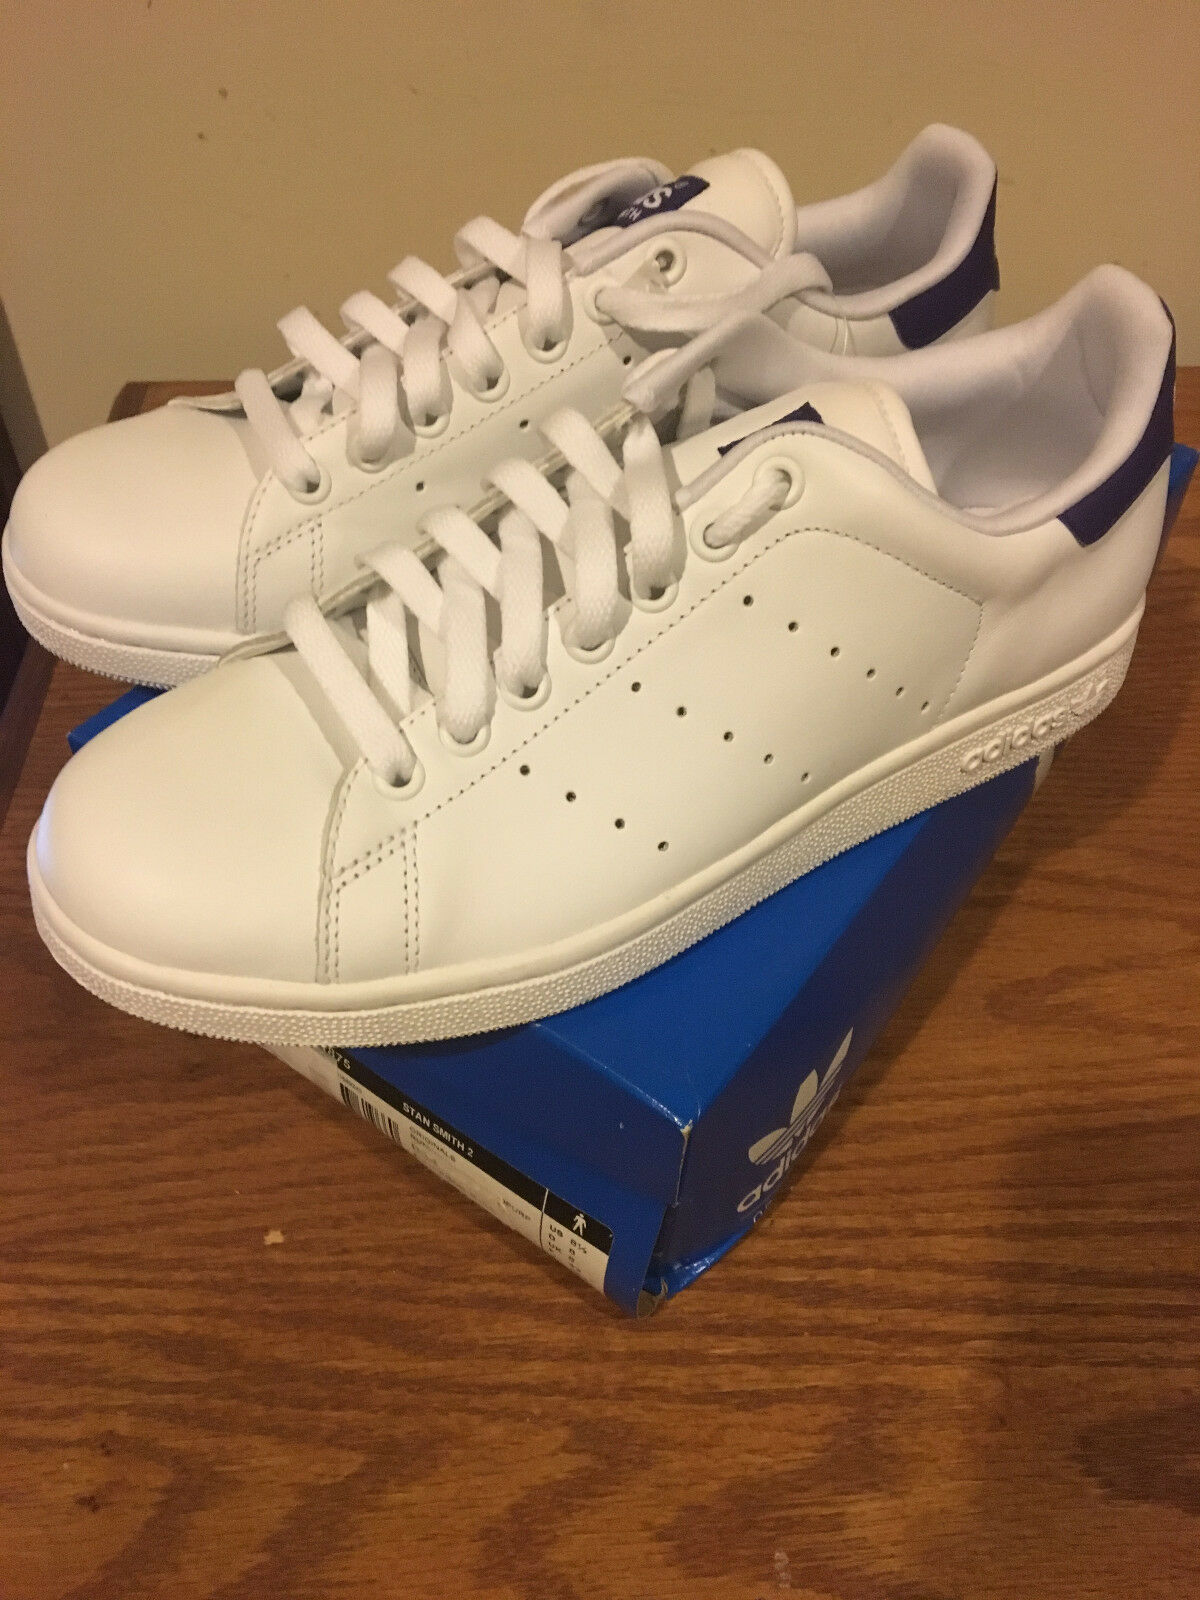 Adidas Originals Stan Smith 2 Purple White G21875 Size 8.5